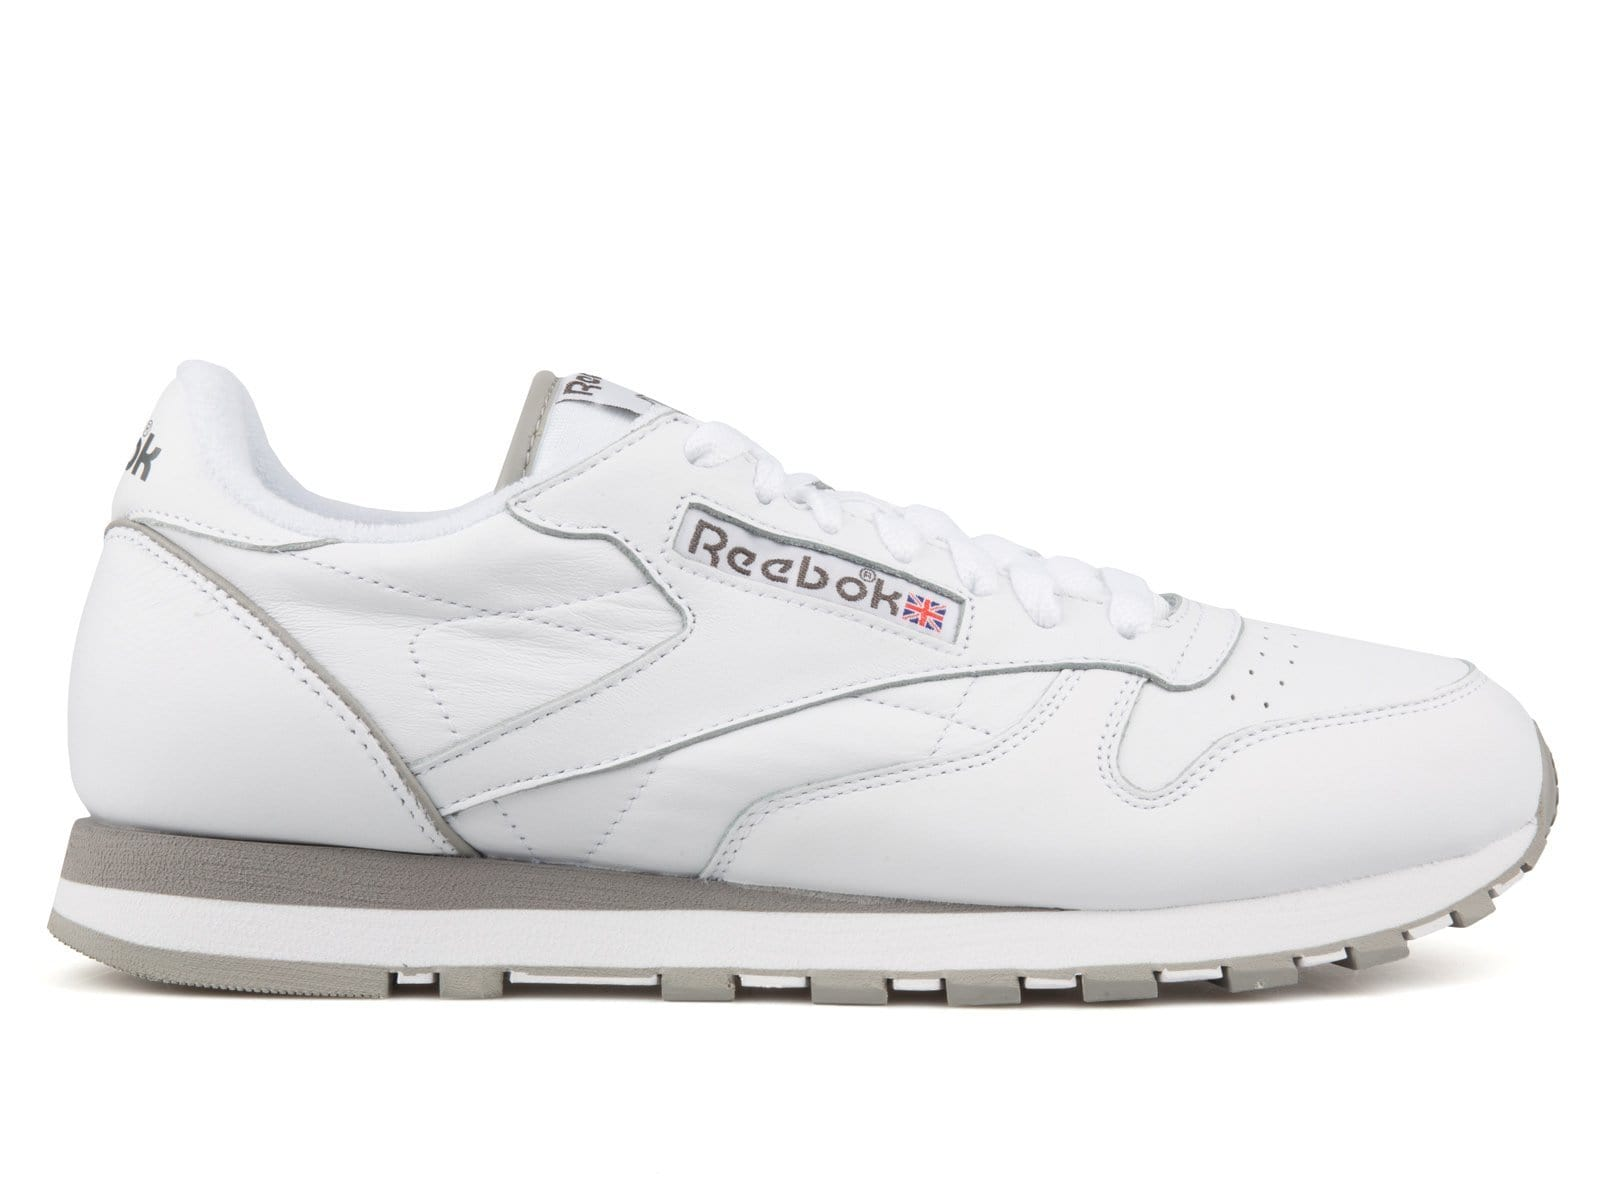 d0049f6c79733a CL LEATHER ARCHIVE White Carbon Red Grey – Bodega